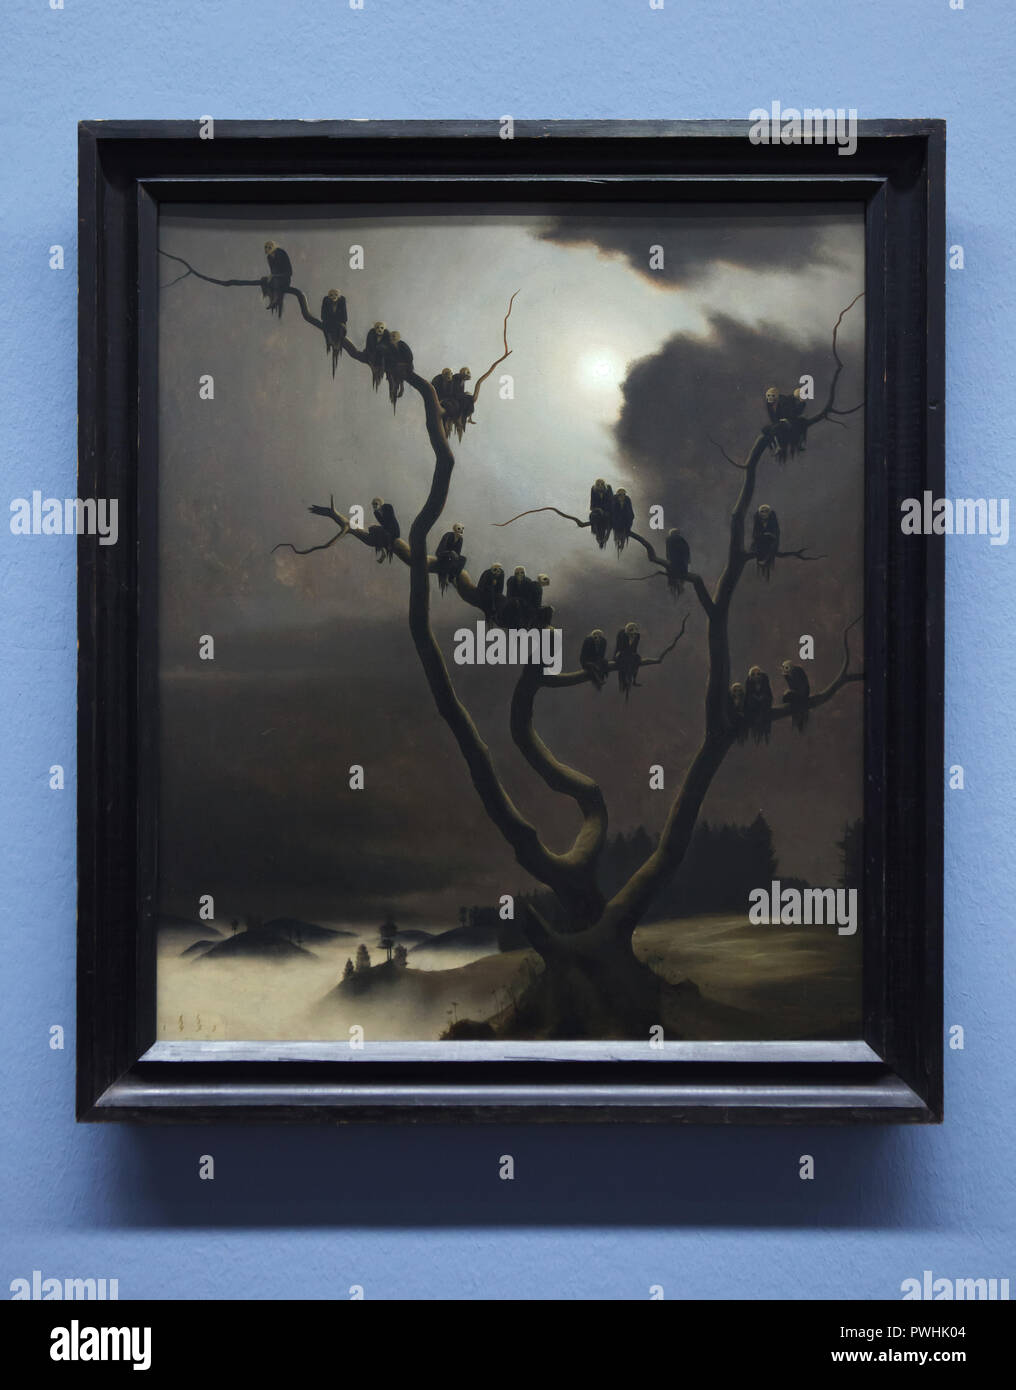 Painting 'Ghosts in the Tree' by Austrian painter Franz Sedlacek (1933) on display in the Albertina Museum in Vienna, Austria. - Stock Image